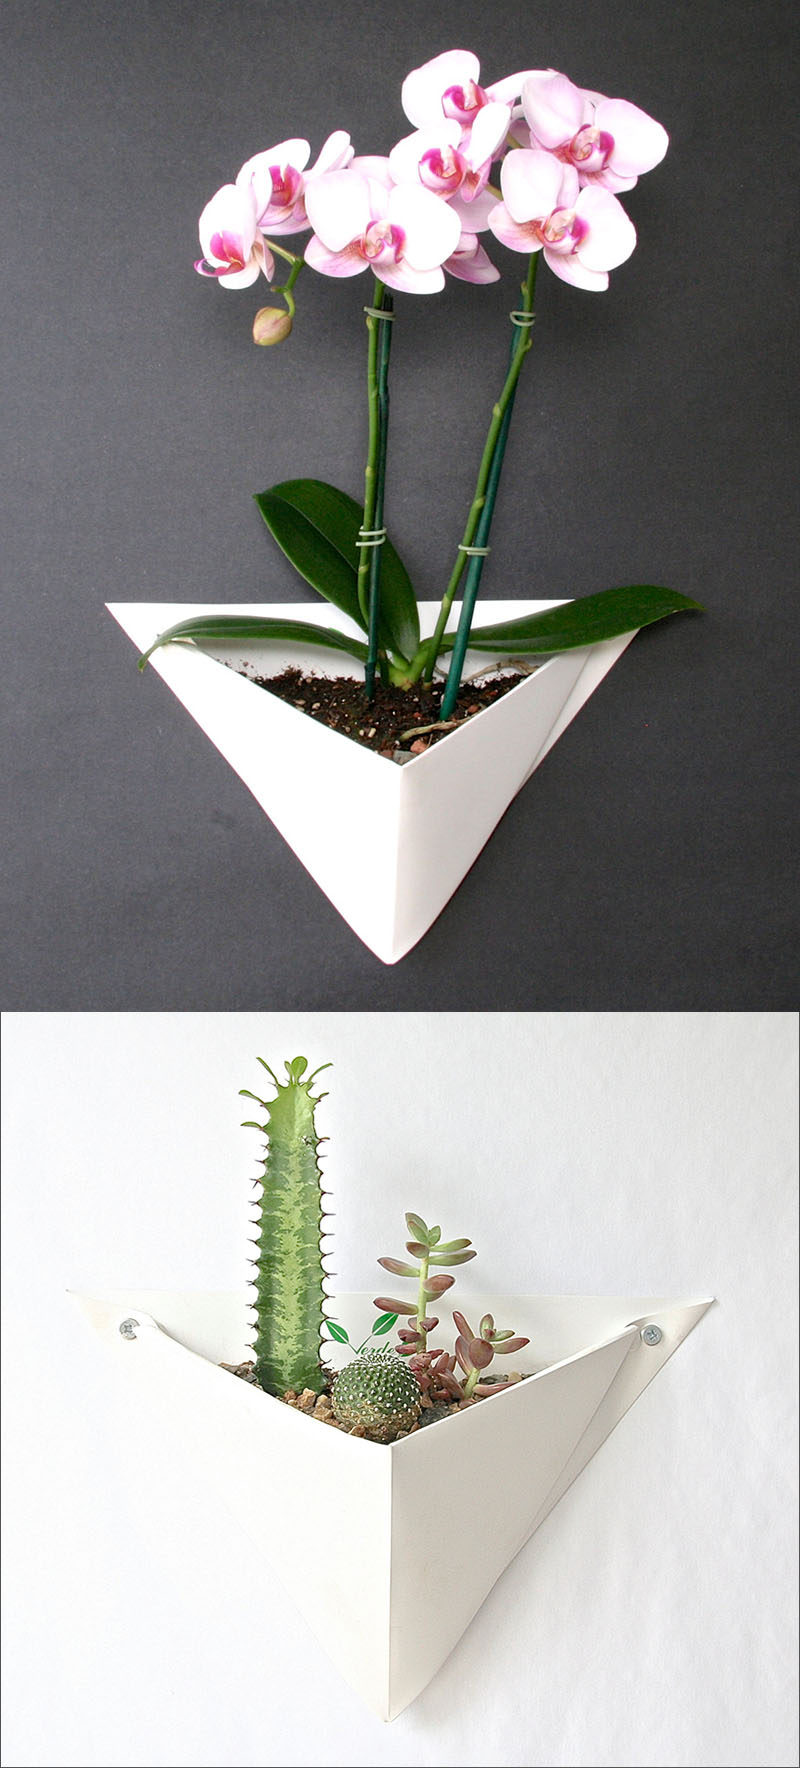 Made from folded sheet metal, these white origami-inspired wall planters create the perfect home for a small succulent garden, a large air plant, or even an orchid. #WallMountedPlanters #WallPlanters #Decor #HomeDecor #Plants #Gardening